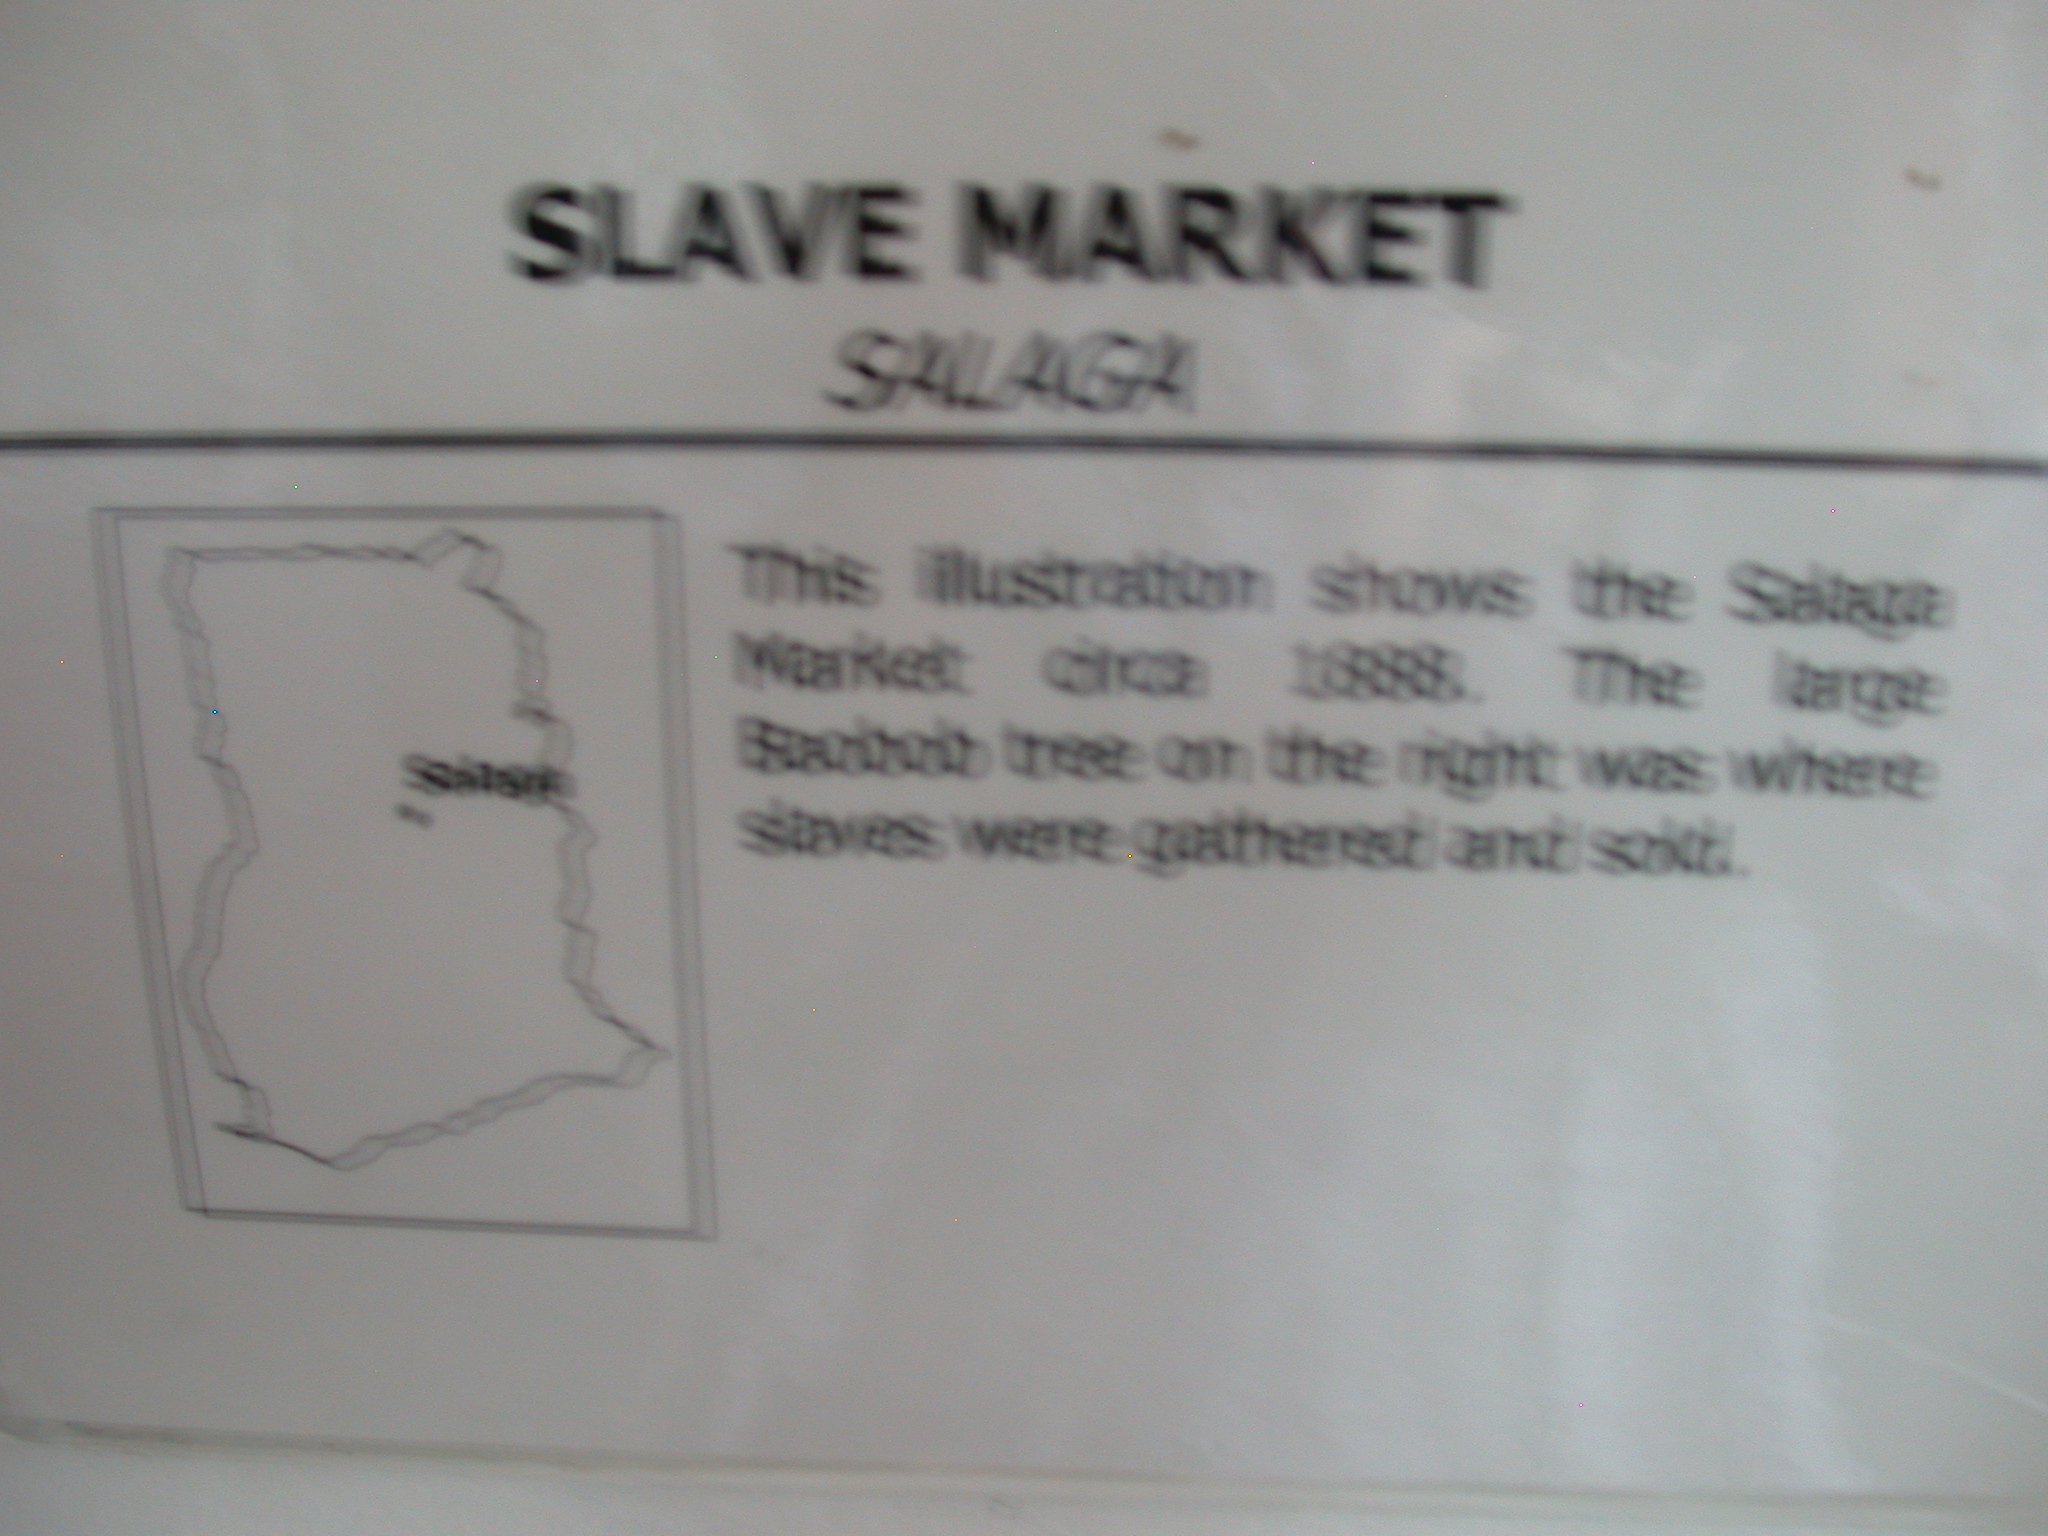 Label for Picture of Slave Market at Baobab Tree in Salaga Circa 1888, National Museum, Accra, Ghana